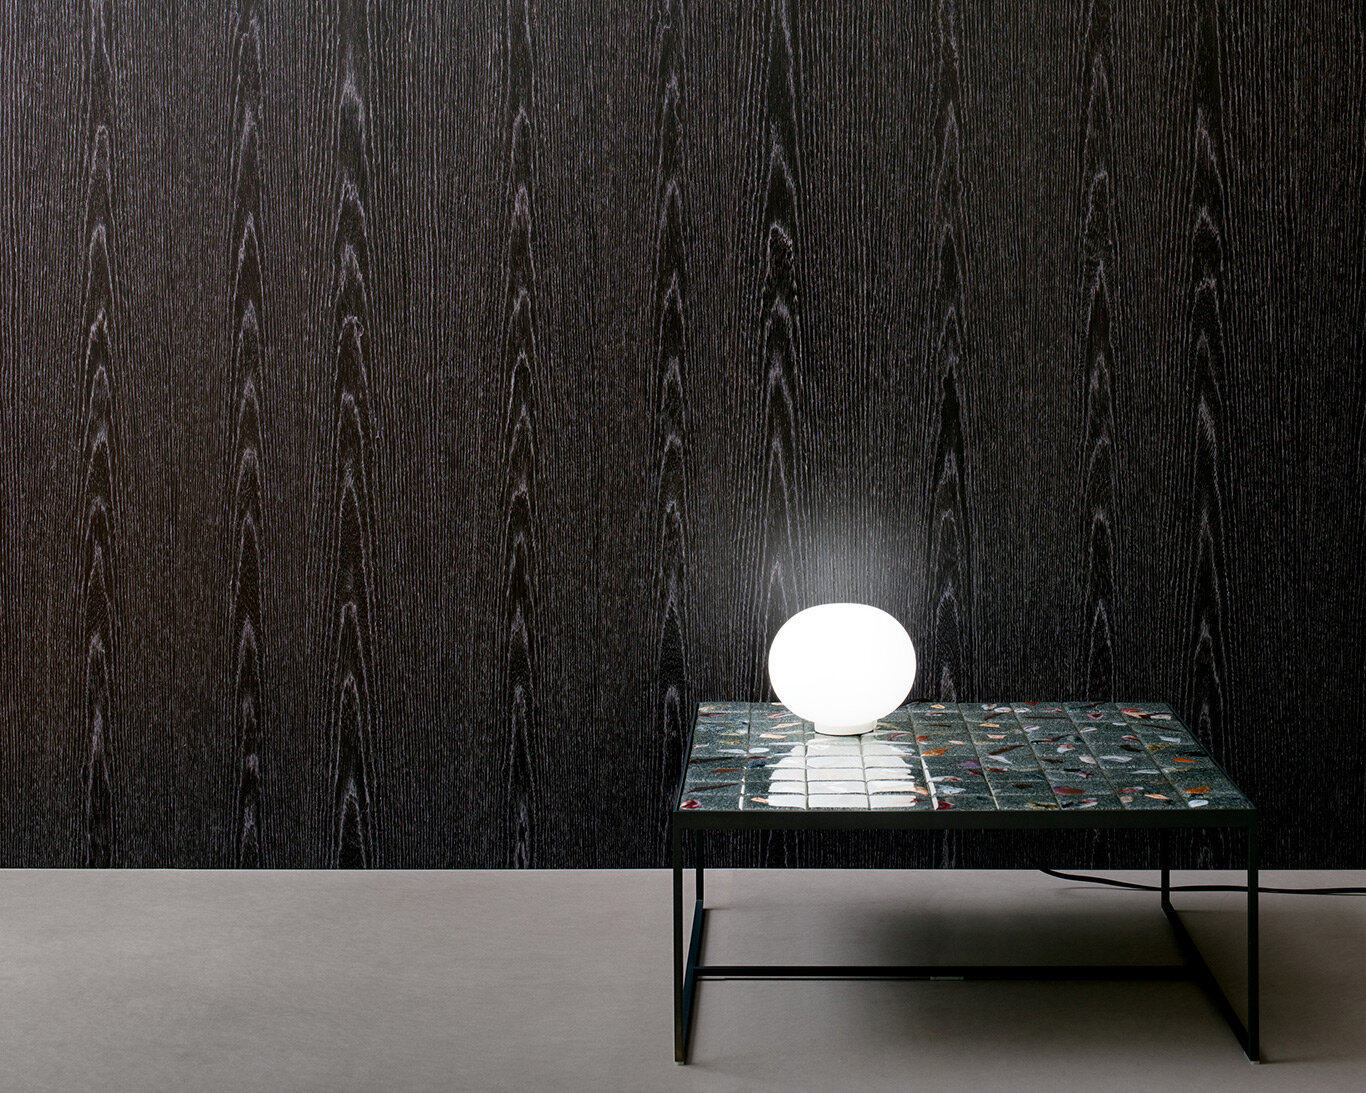 Wolf-Gordon Updates Natural Wallcovering Collection: WonderWood® Veneers from Sustainable Tree Farms